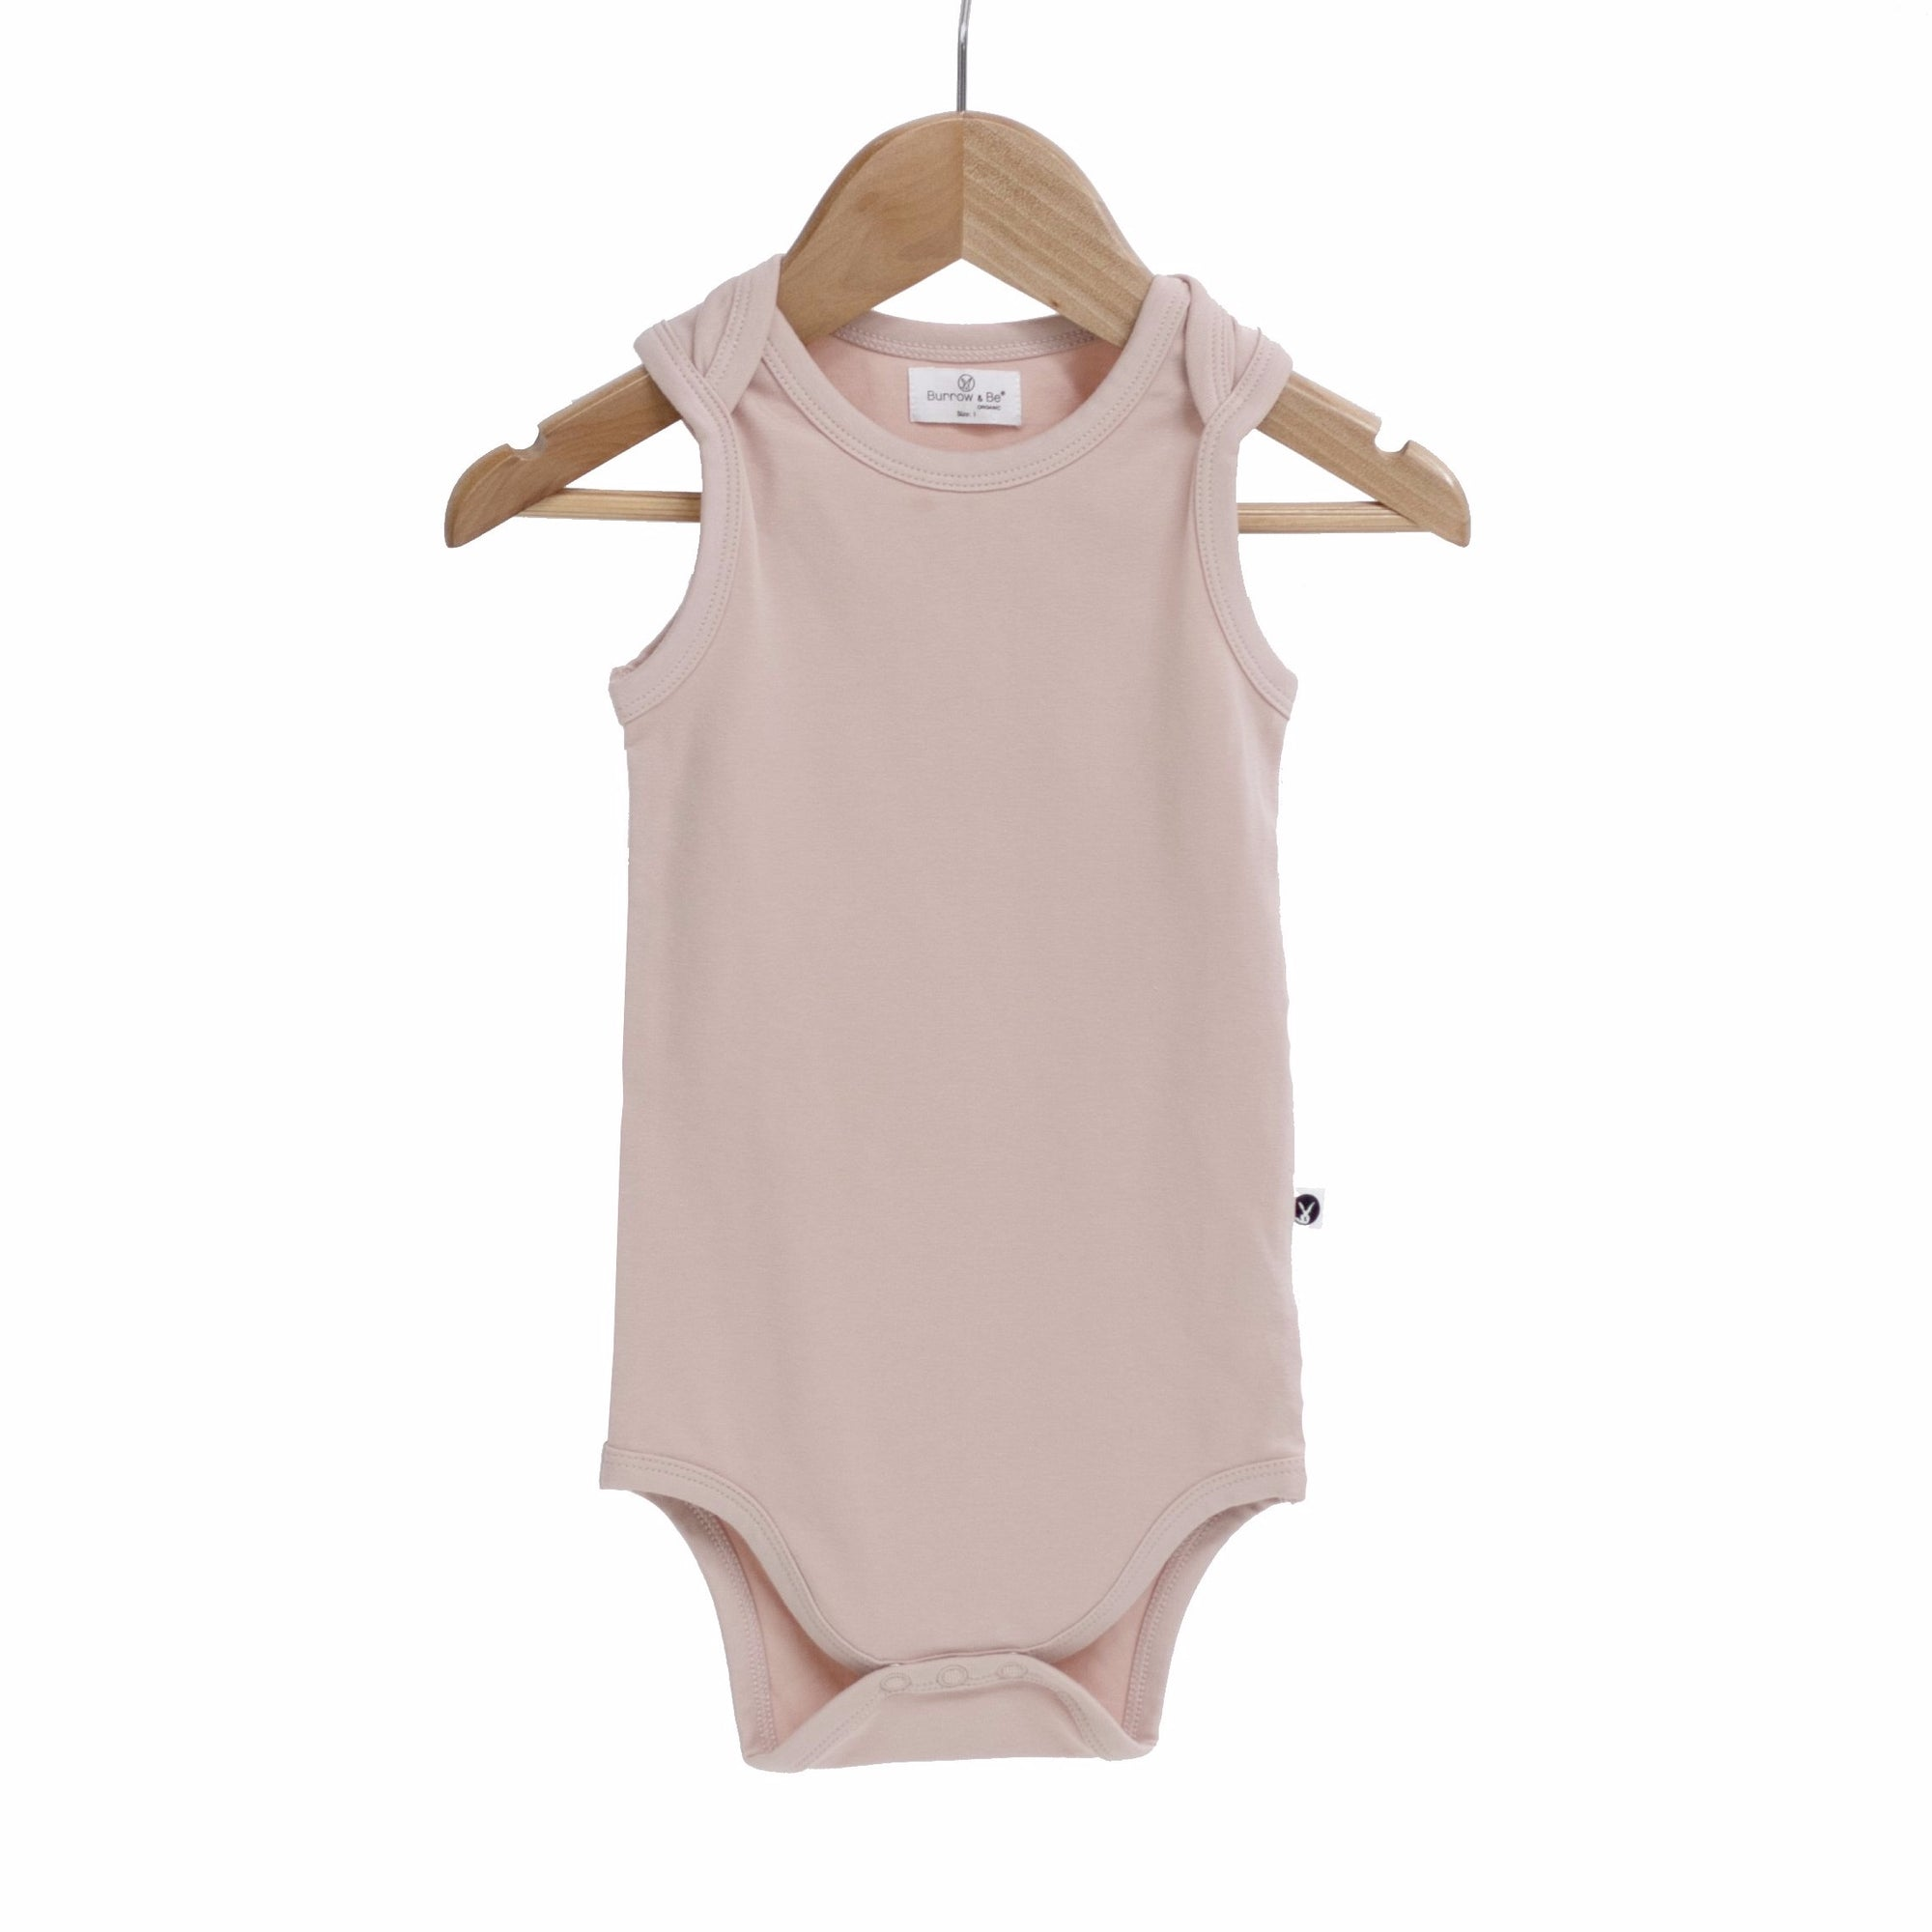 Burrow & Be Singlet Onesie in Dusty Rose